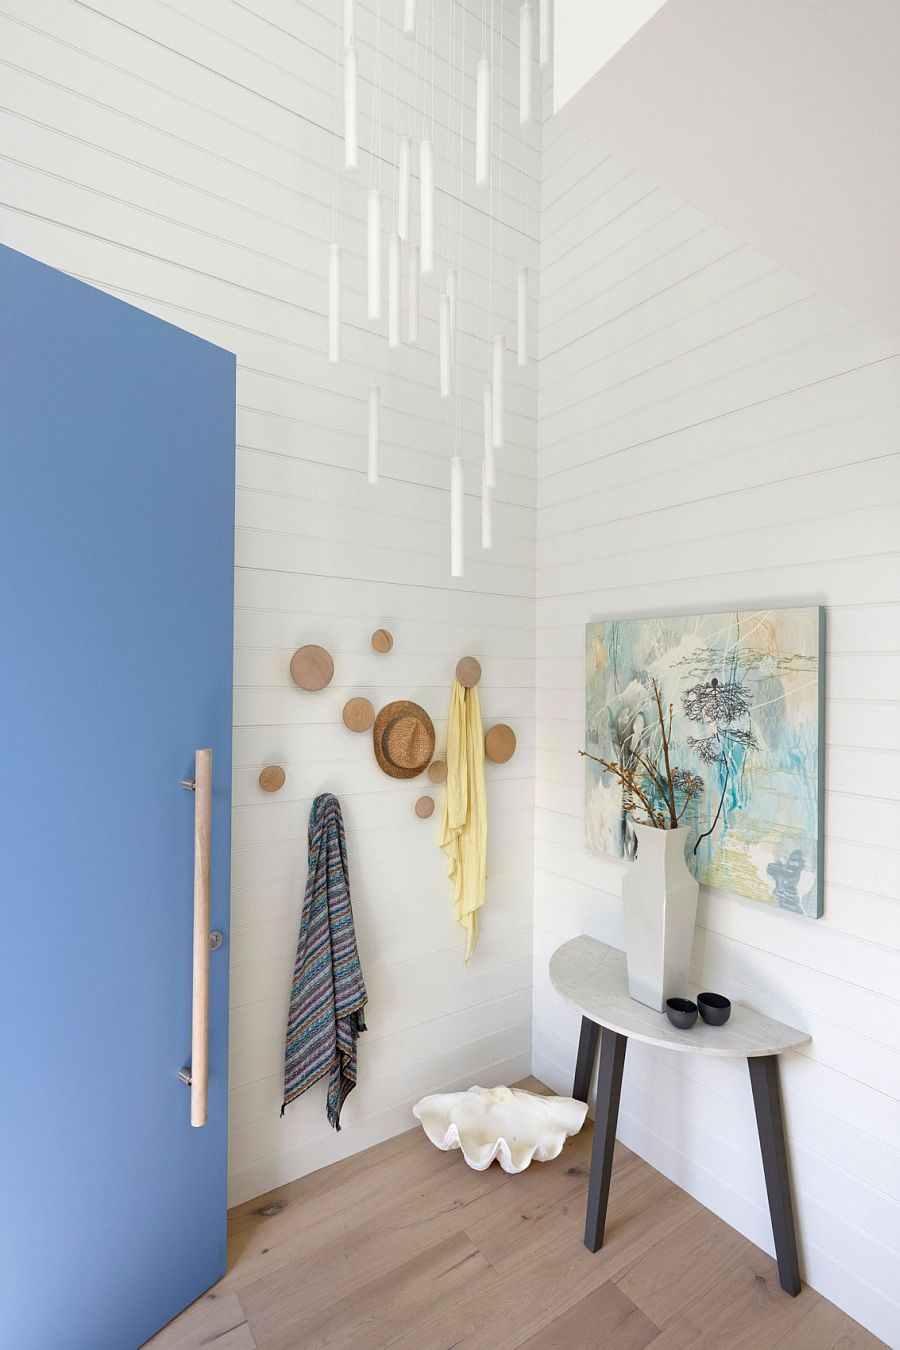 White and blue at the entrance sets the tone for the beach house